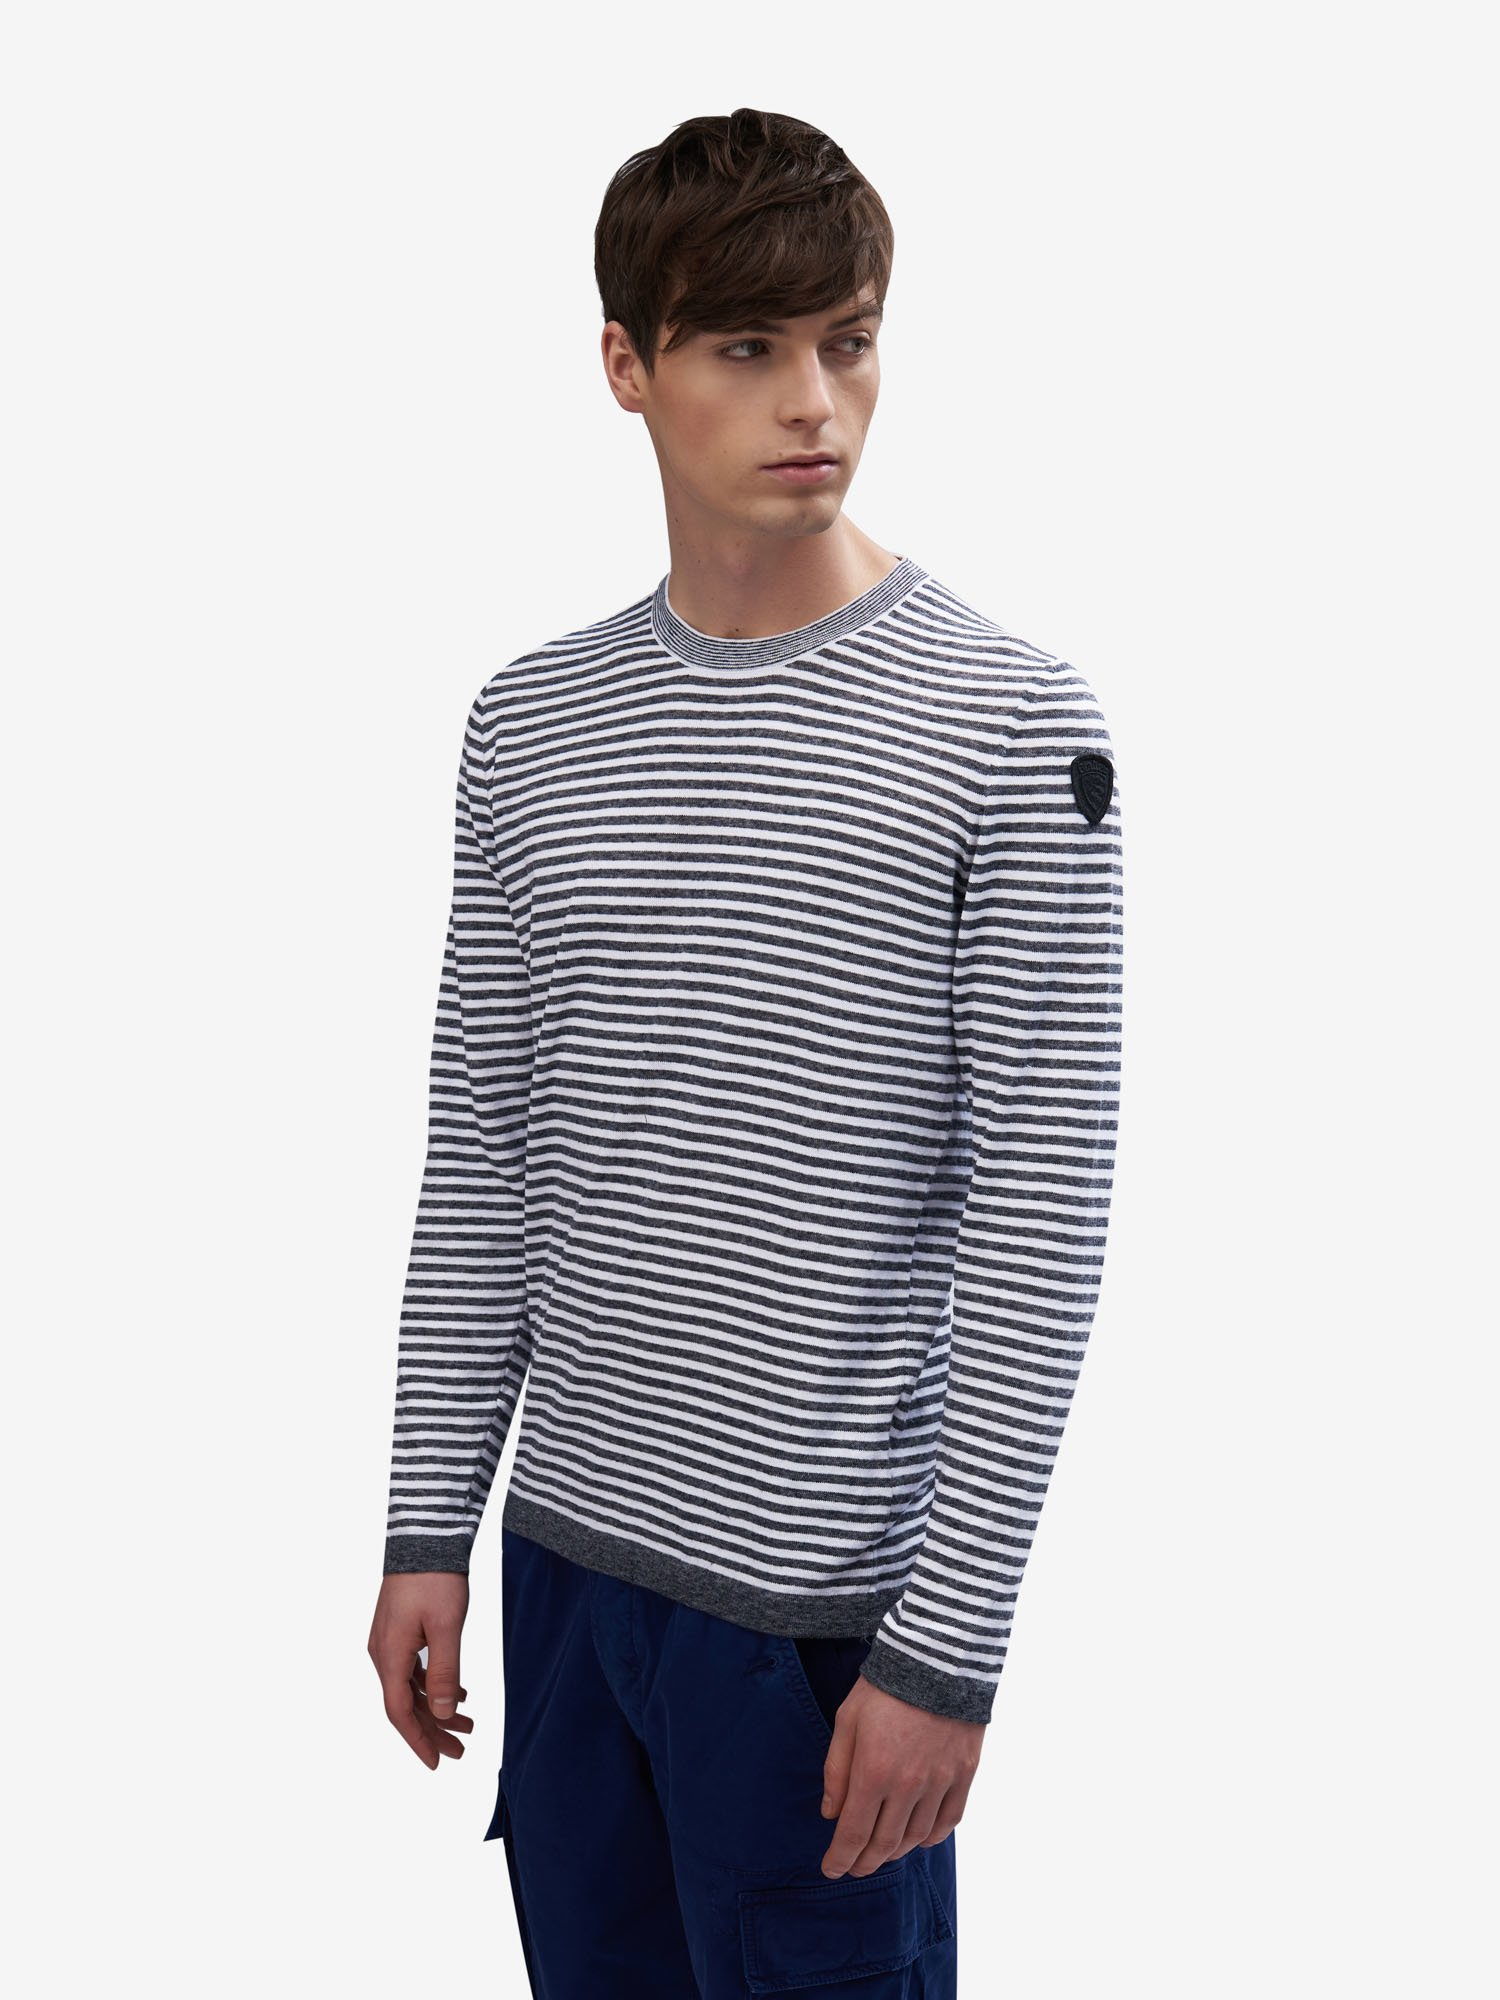 Blauer - STRIPED SWEATER - Antracite Melange - Blauer